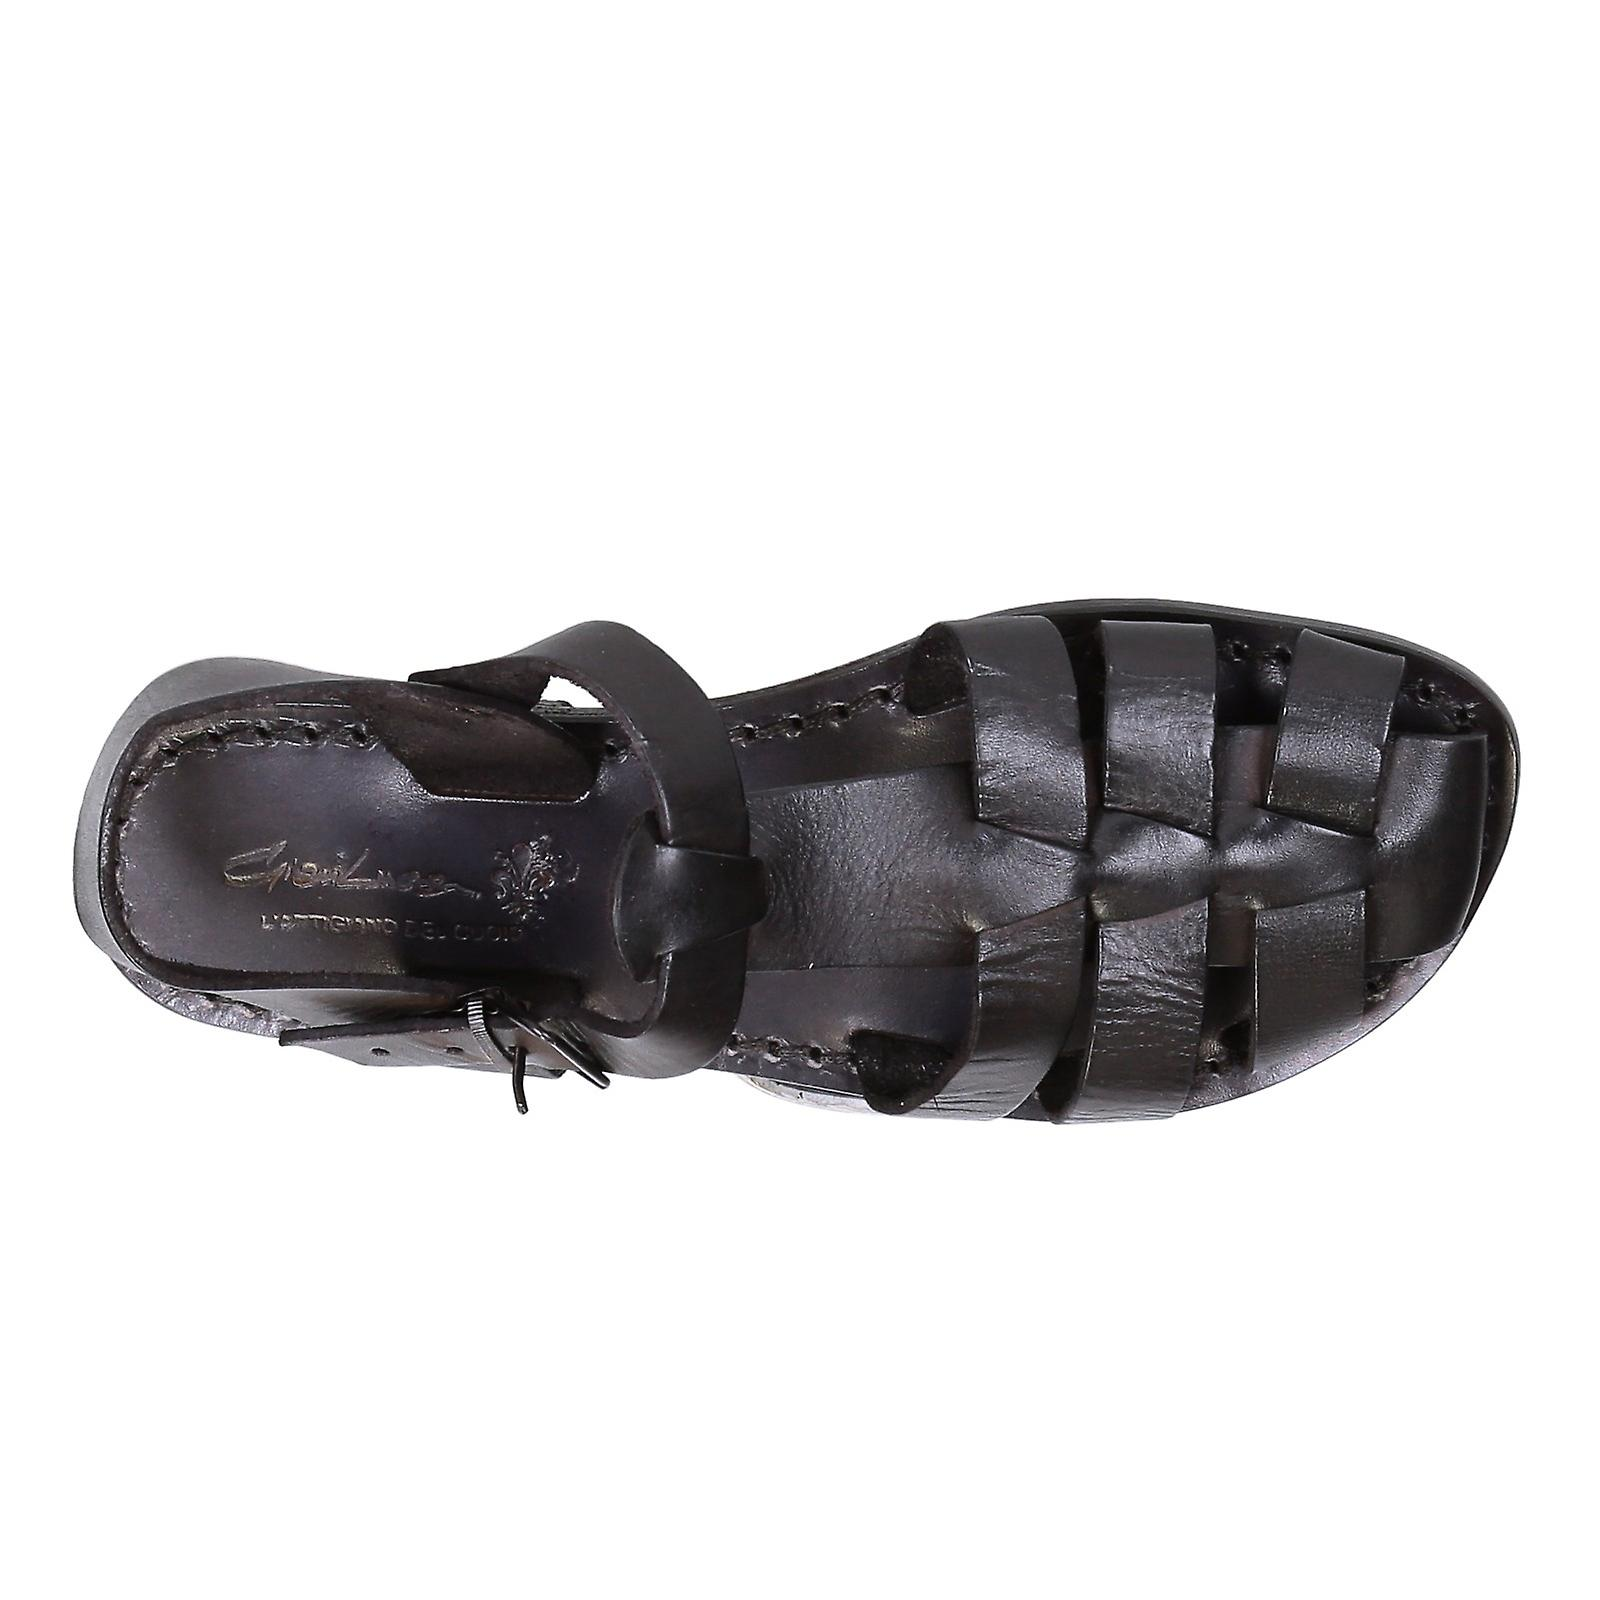 a9eae3ba7da4 Black flat sandals for women real leather Handmade in Italy